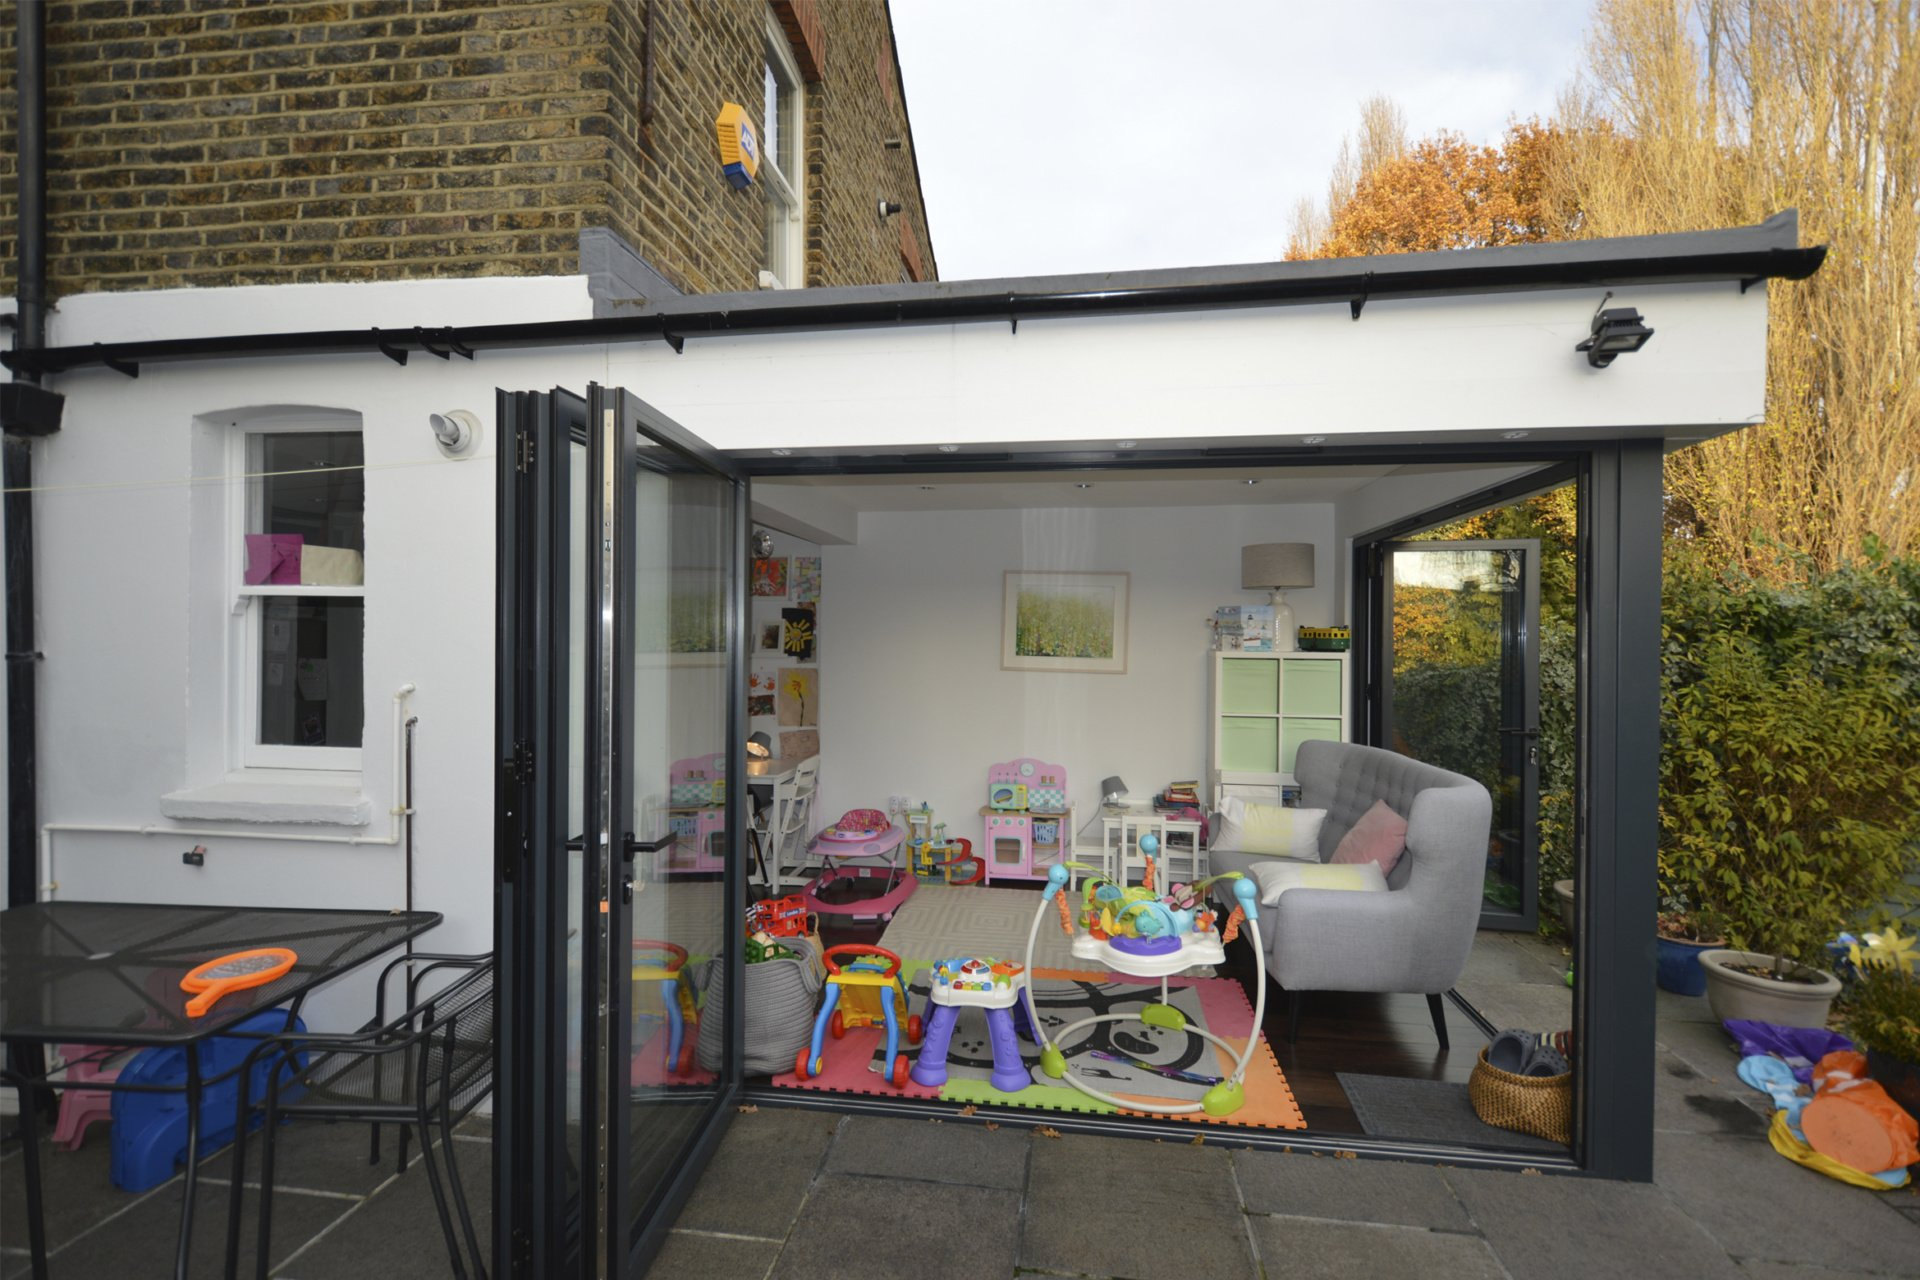 Architect designed rear house extension Penge east Bromley SE26 Side view 1 Penge East, Bromley SE26 | Rear house extension